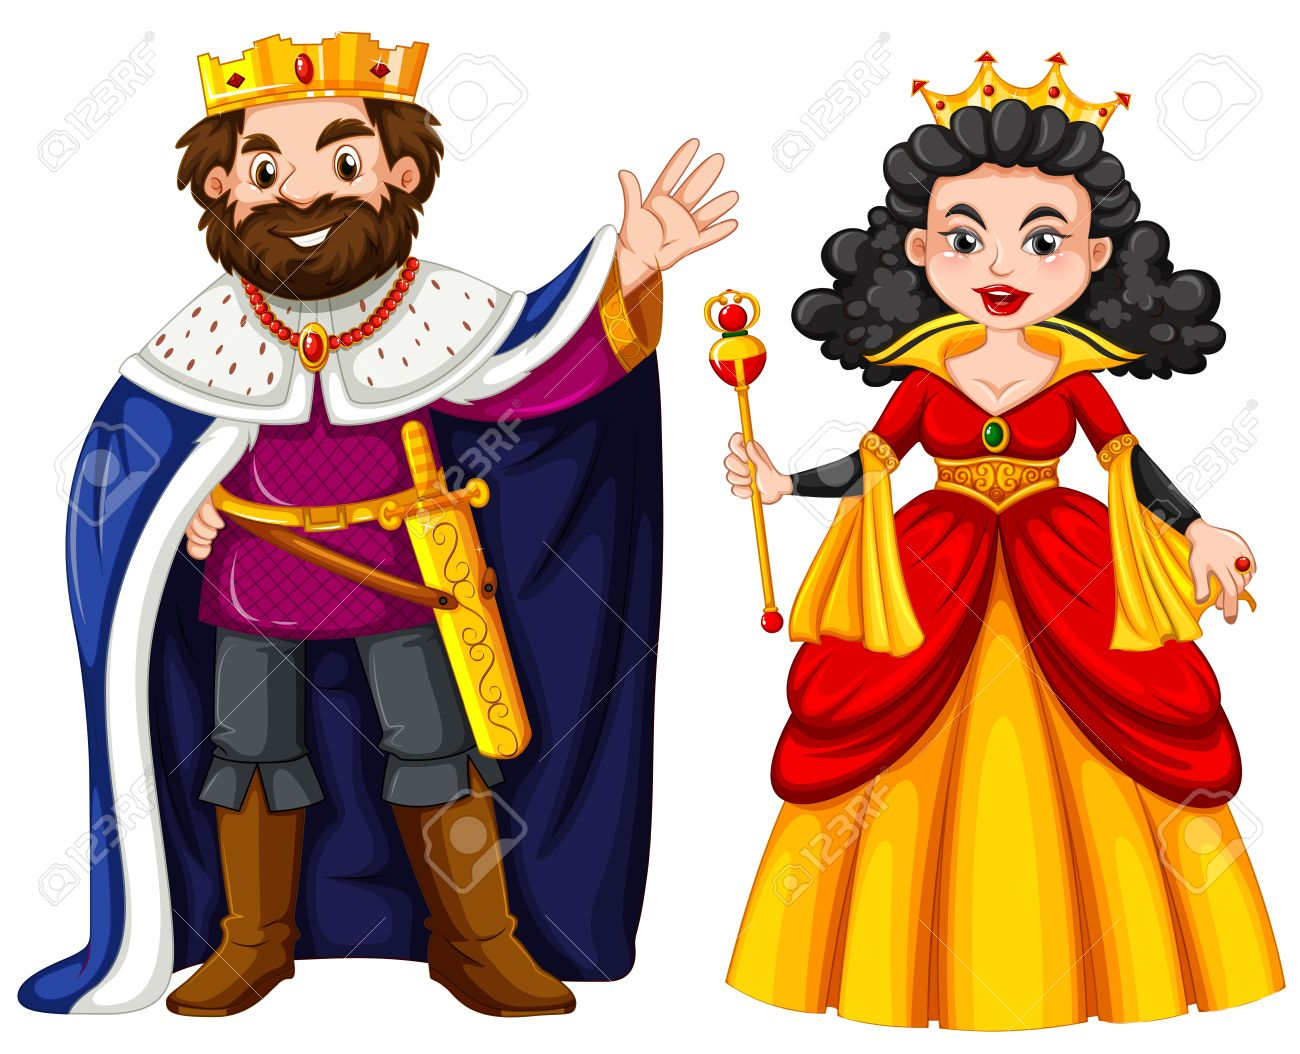 King and queen with happy face illustration.